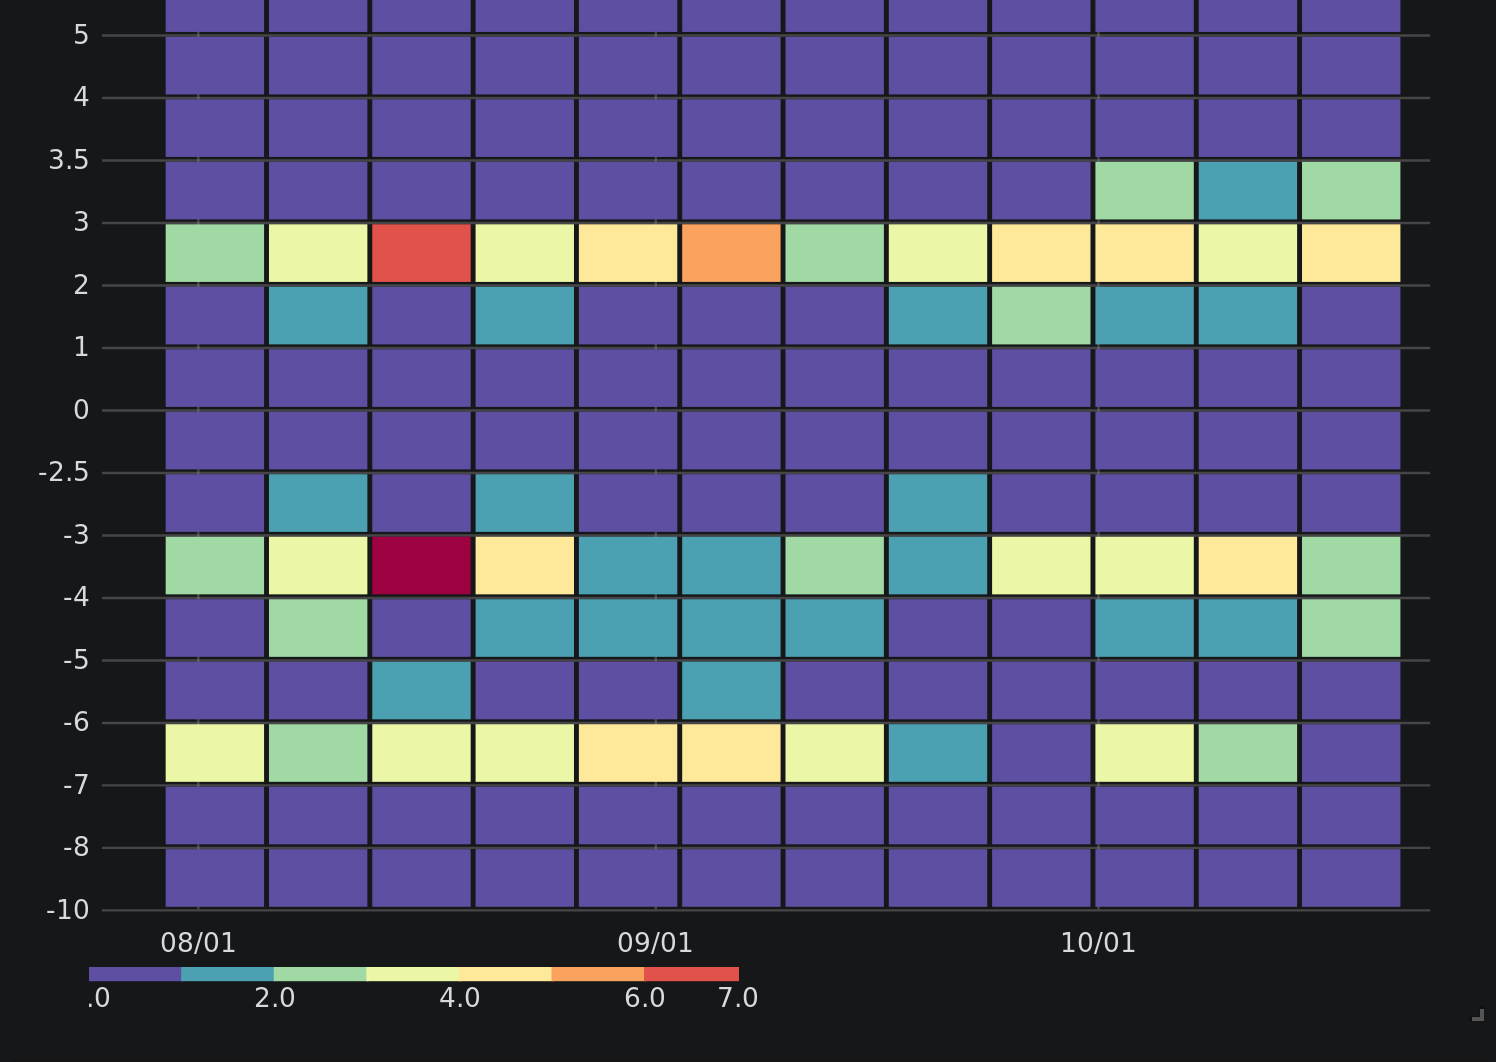 graph of Instrumentation contributors by time zone